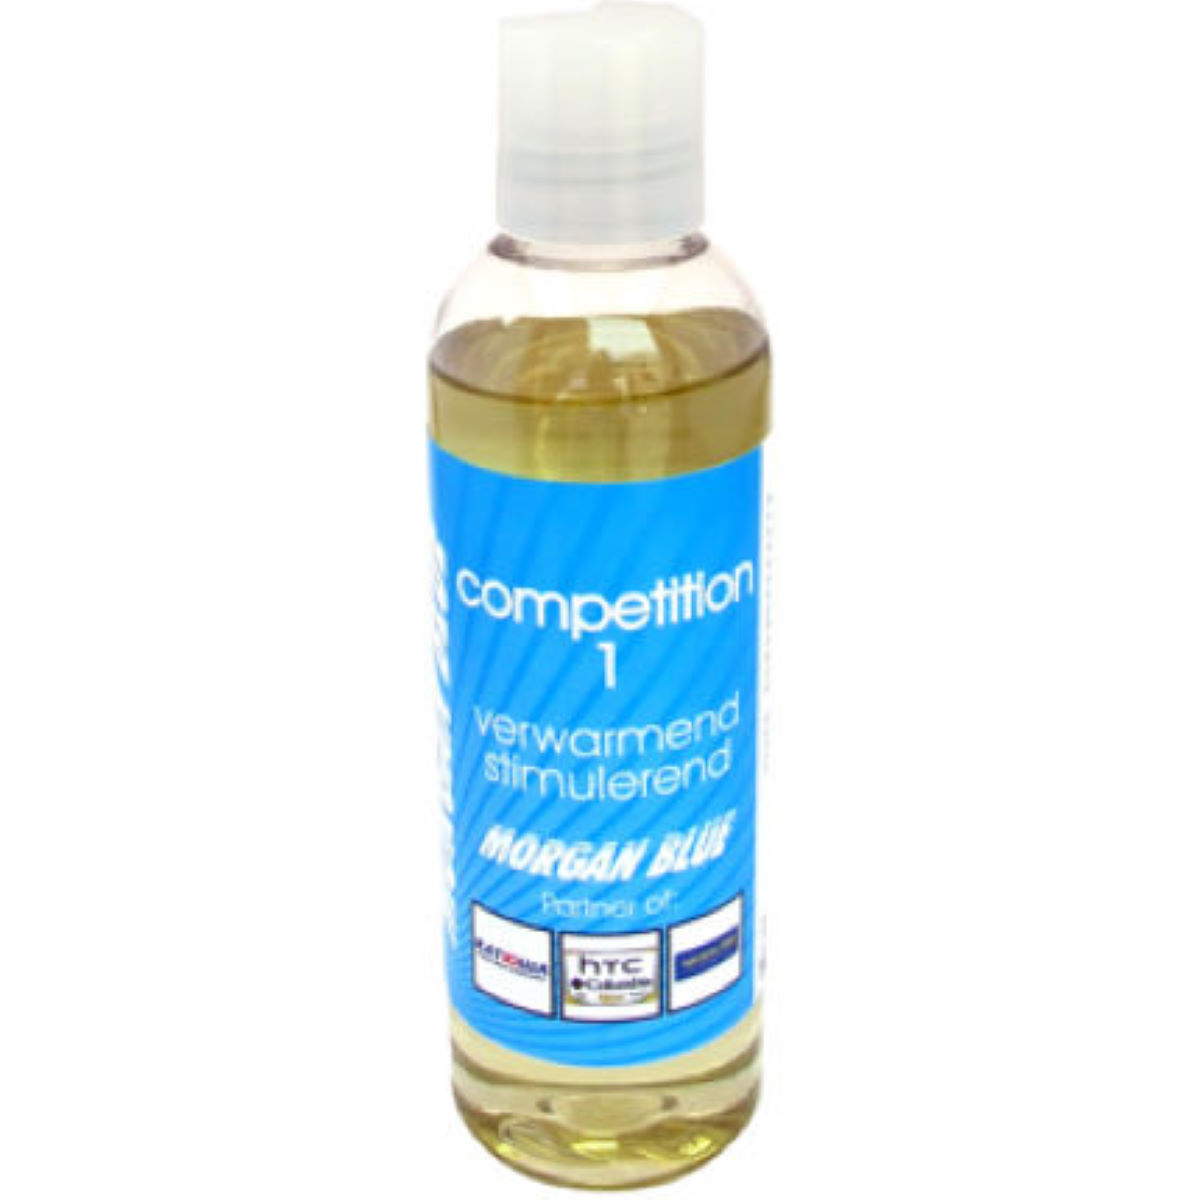 Aceite de masaje Morgan Blue Competition 1 (200 ml) - Cremas musculares